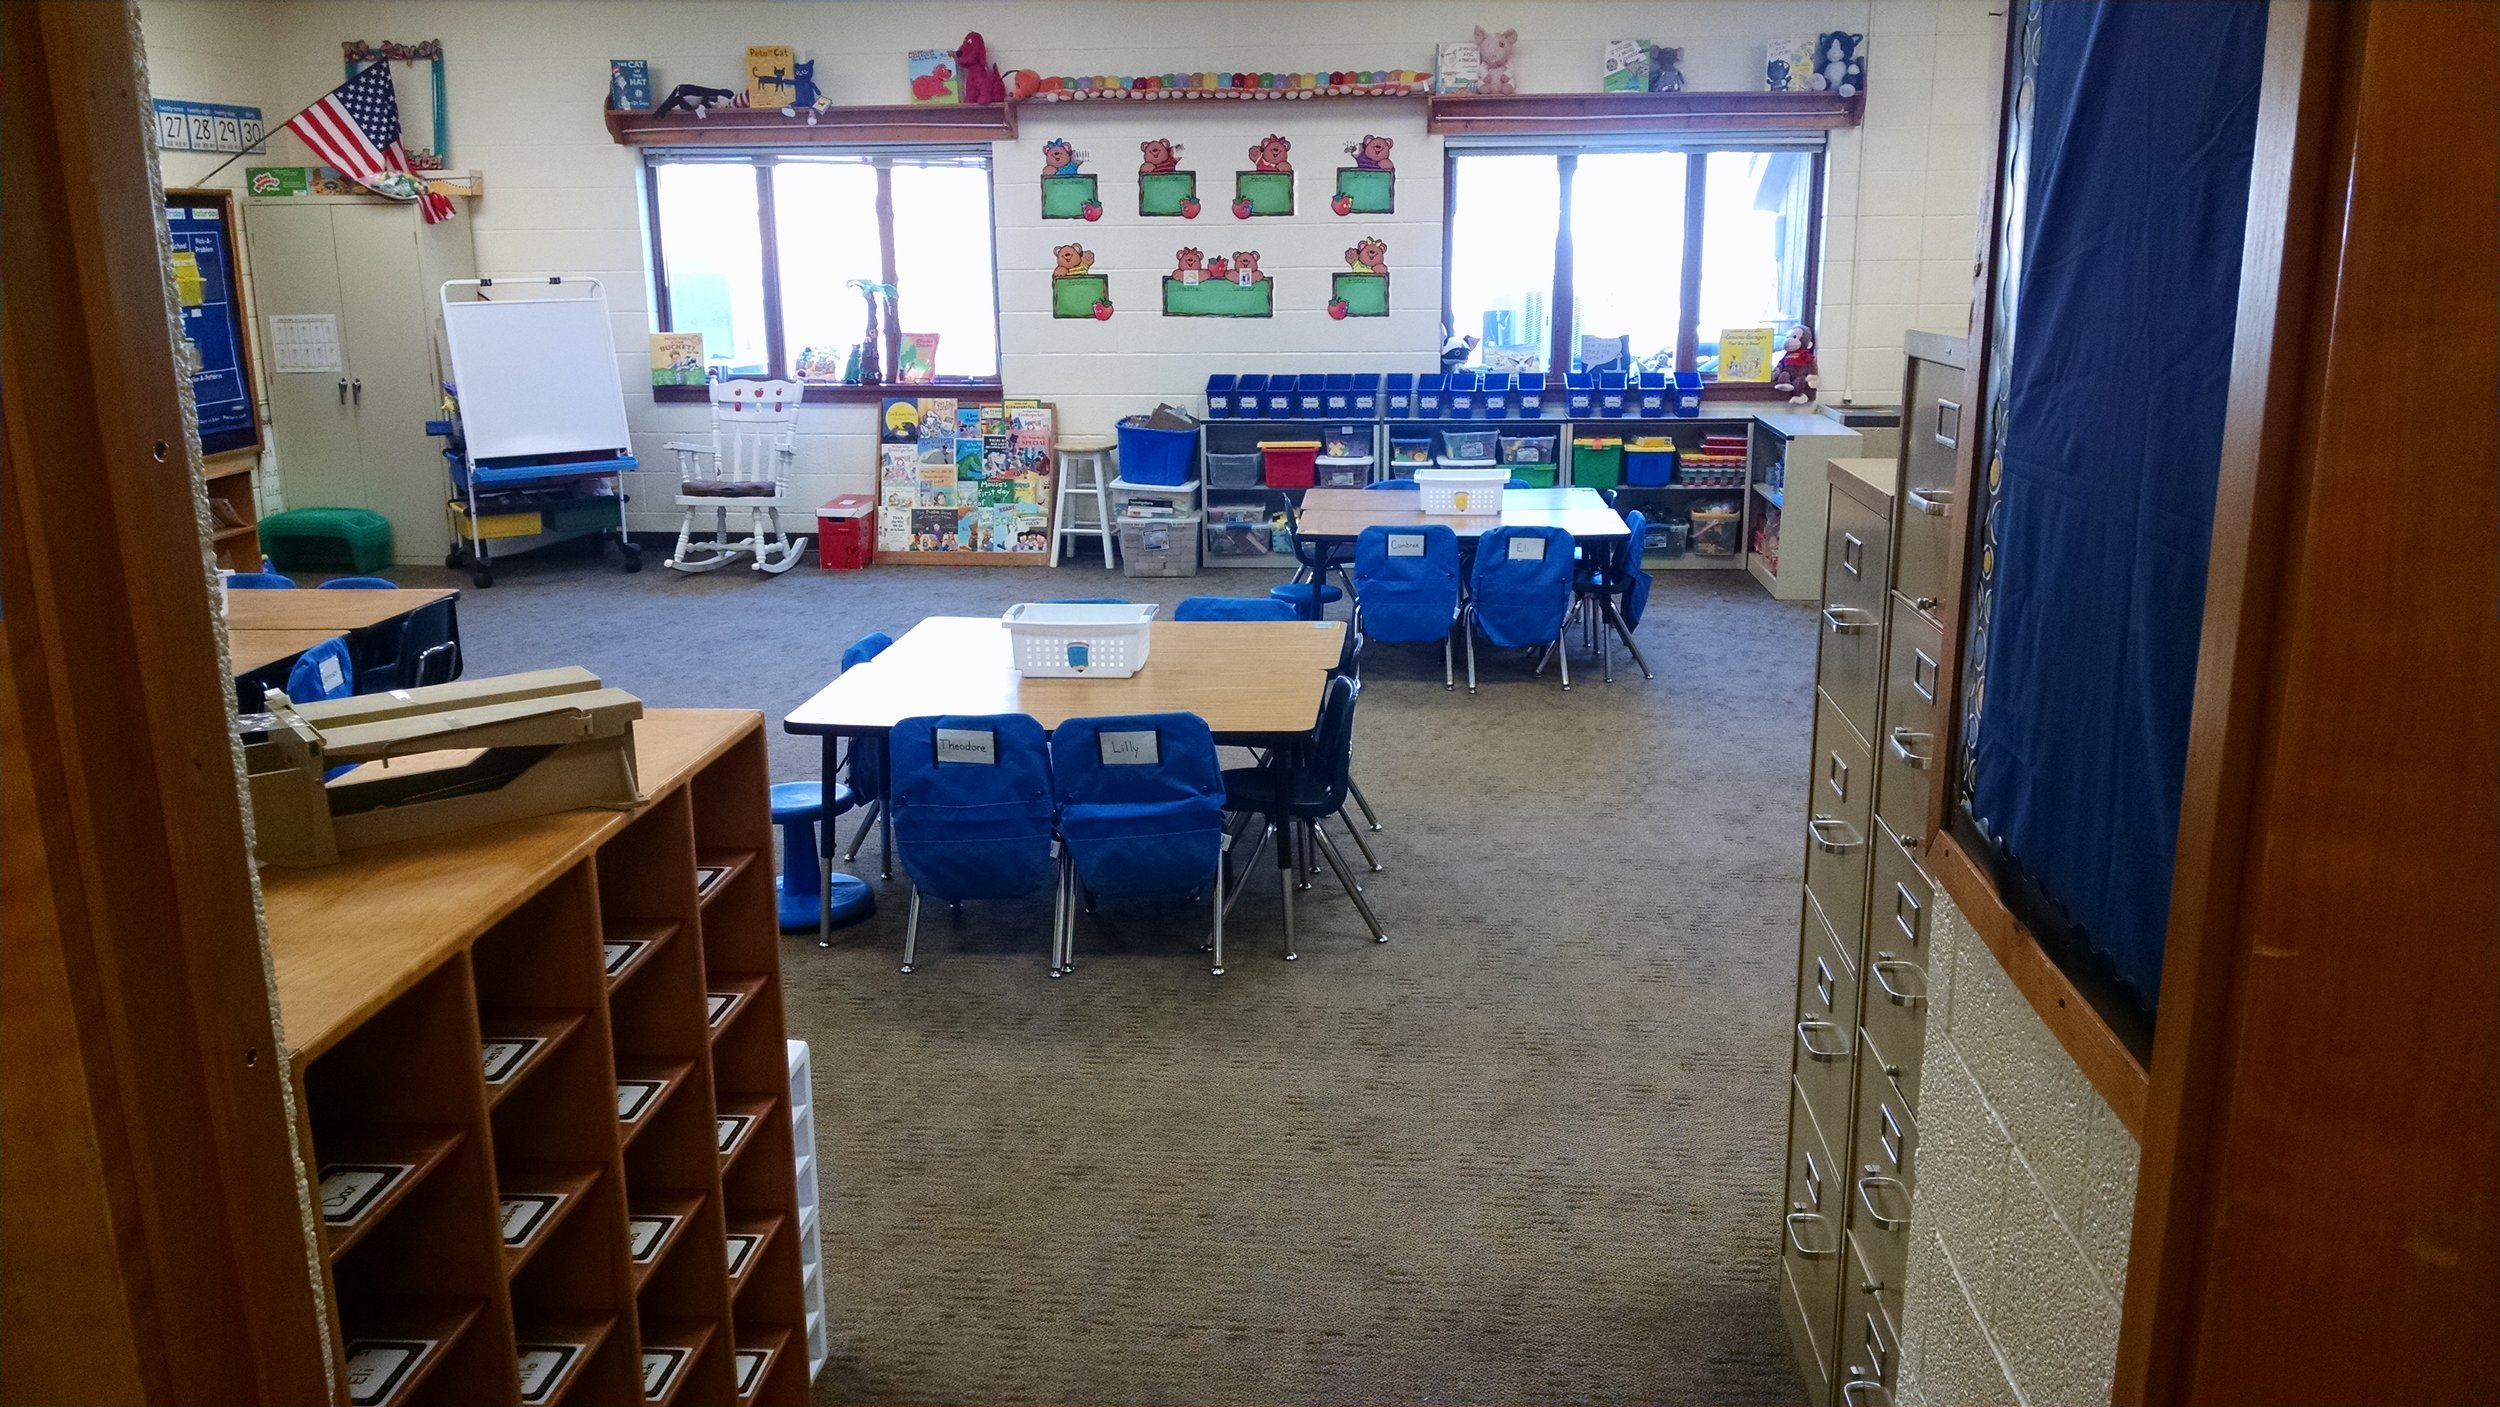 Classrooms ready Day 3 - Teachers were in Friday resetting classrooms. Any traces of smoke smell are gone and rooms are ready for students!